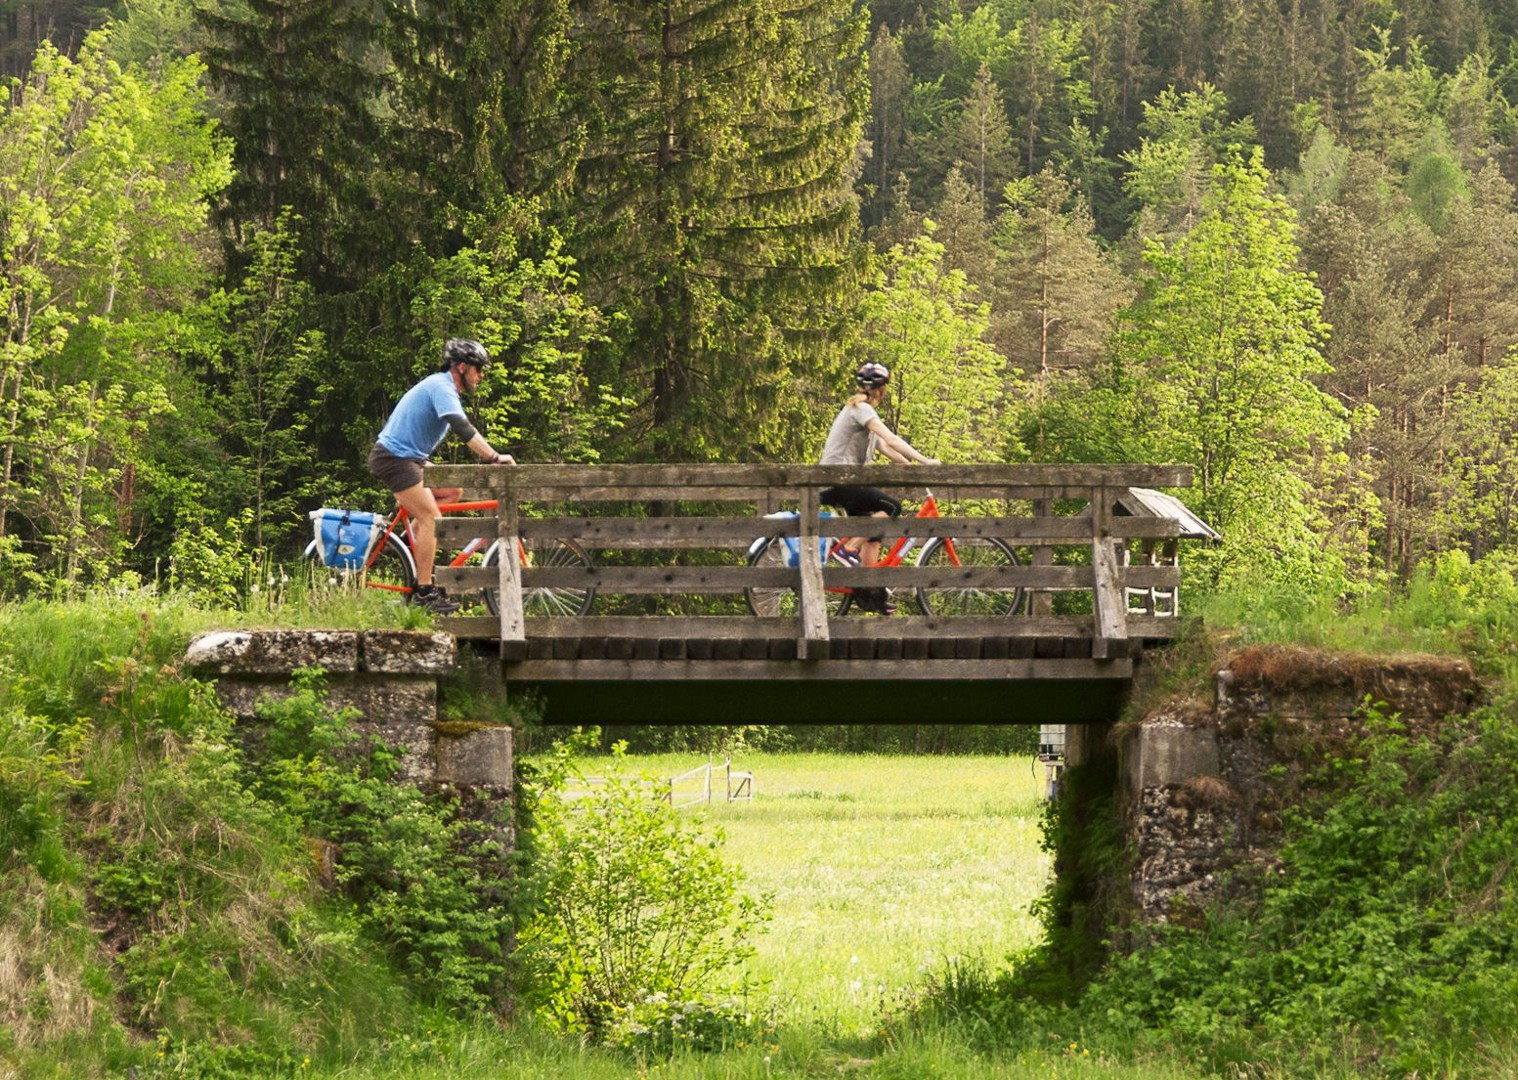 self-guided-leisure-cycling-holiday-slovenia-capital-to-coast.jpg - Slovenia - Capital to Coast - Self-Guided Leisure Cycling Holiday - Leisure Cycling